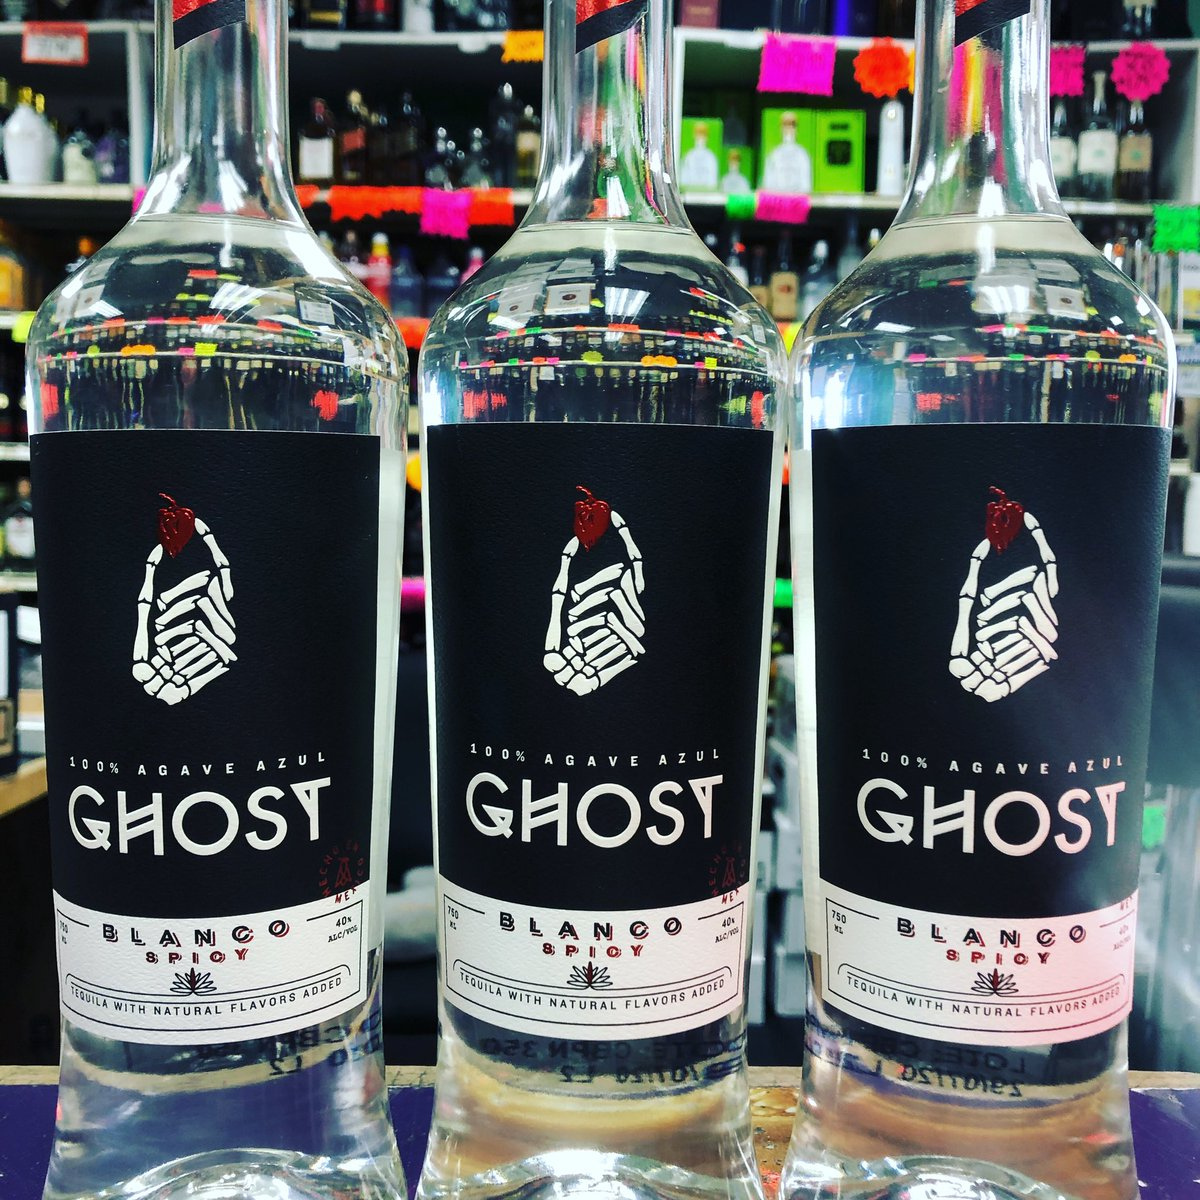 NEW AT ON THE ROX!!! GHOST TEQUILA!!! #ontheroxliquors #ontheroxliquor #ontherocksliquors #wny #buffalony #amherstny #tonawandany #amherstbee #kentonbee #buffalonews #buffalospree #ghosttequila #ghostpeppertequila #ghostpepper https://t.co/PadNhOCDT7